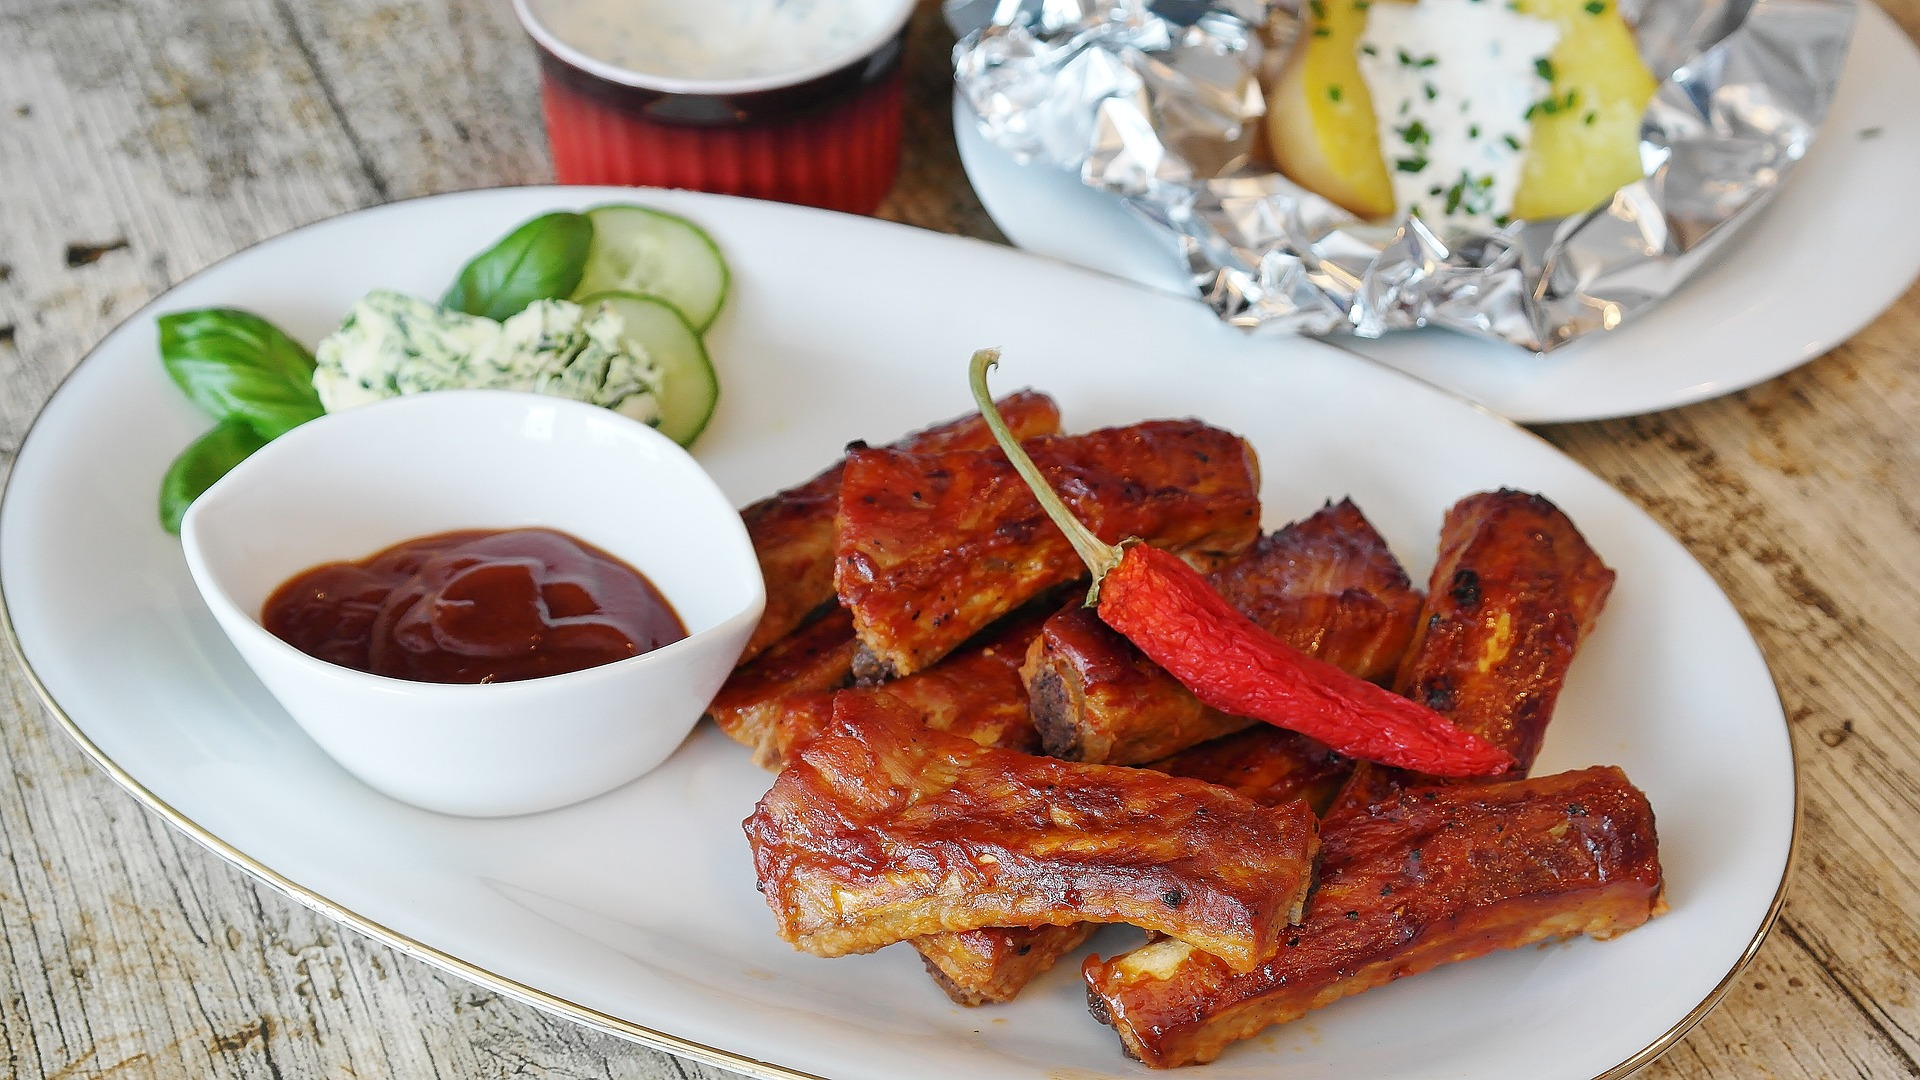 spare-ribs-2225208_1920